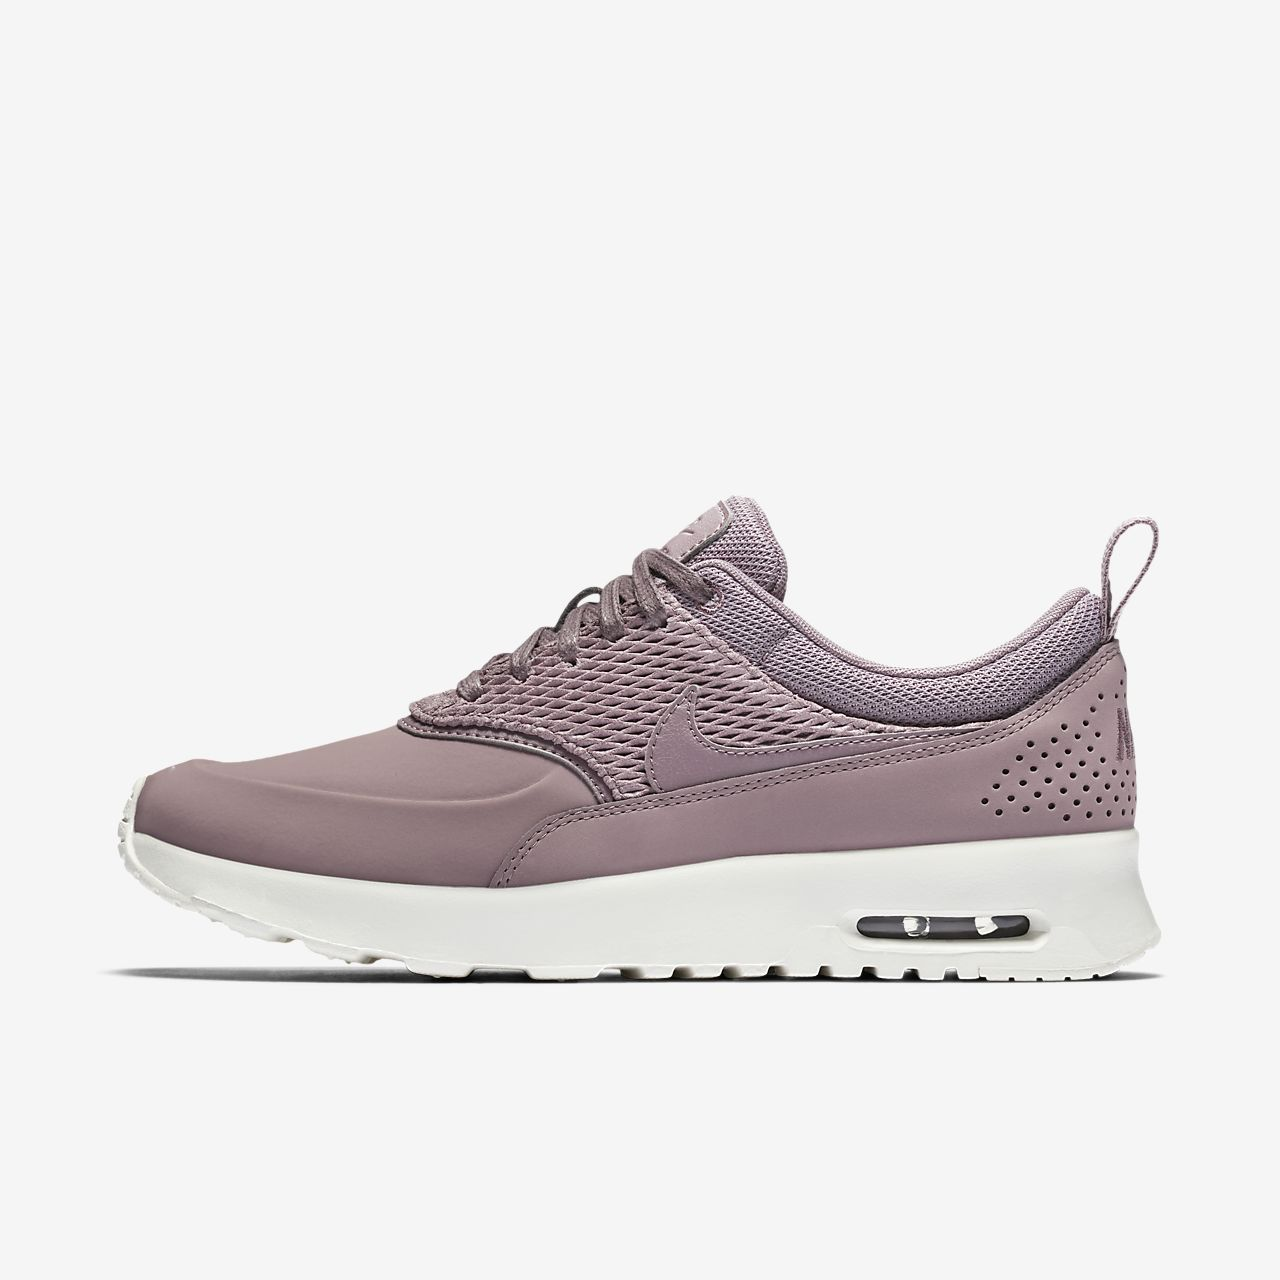 nike air max thea premium womens shoe tanforan